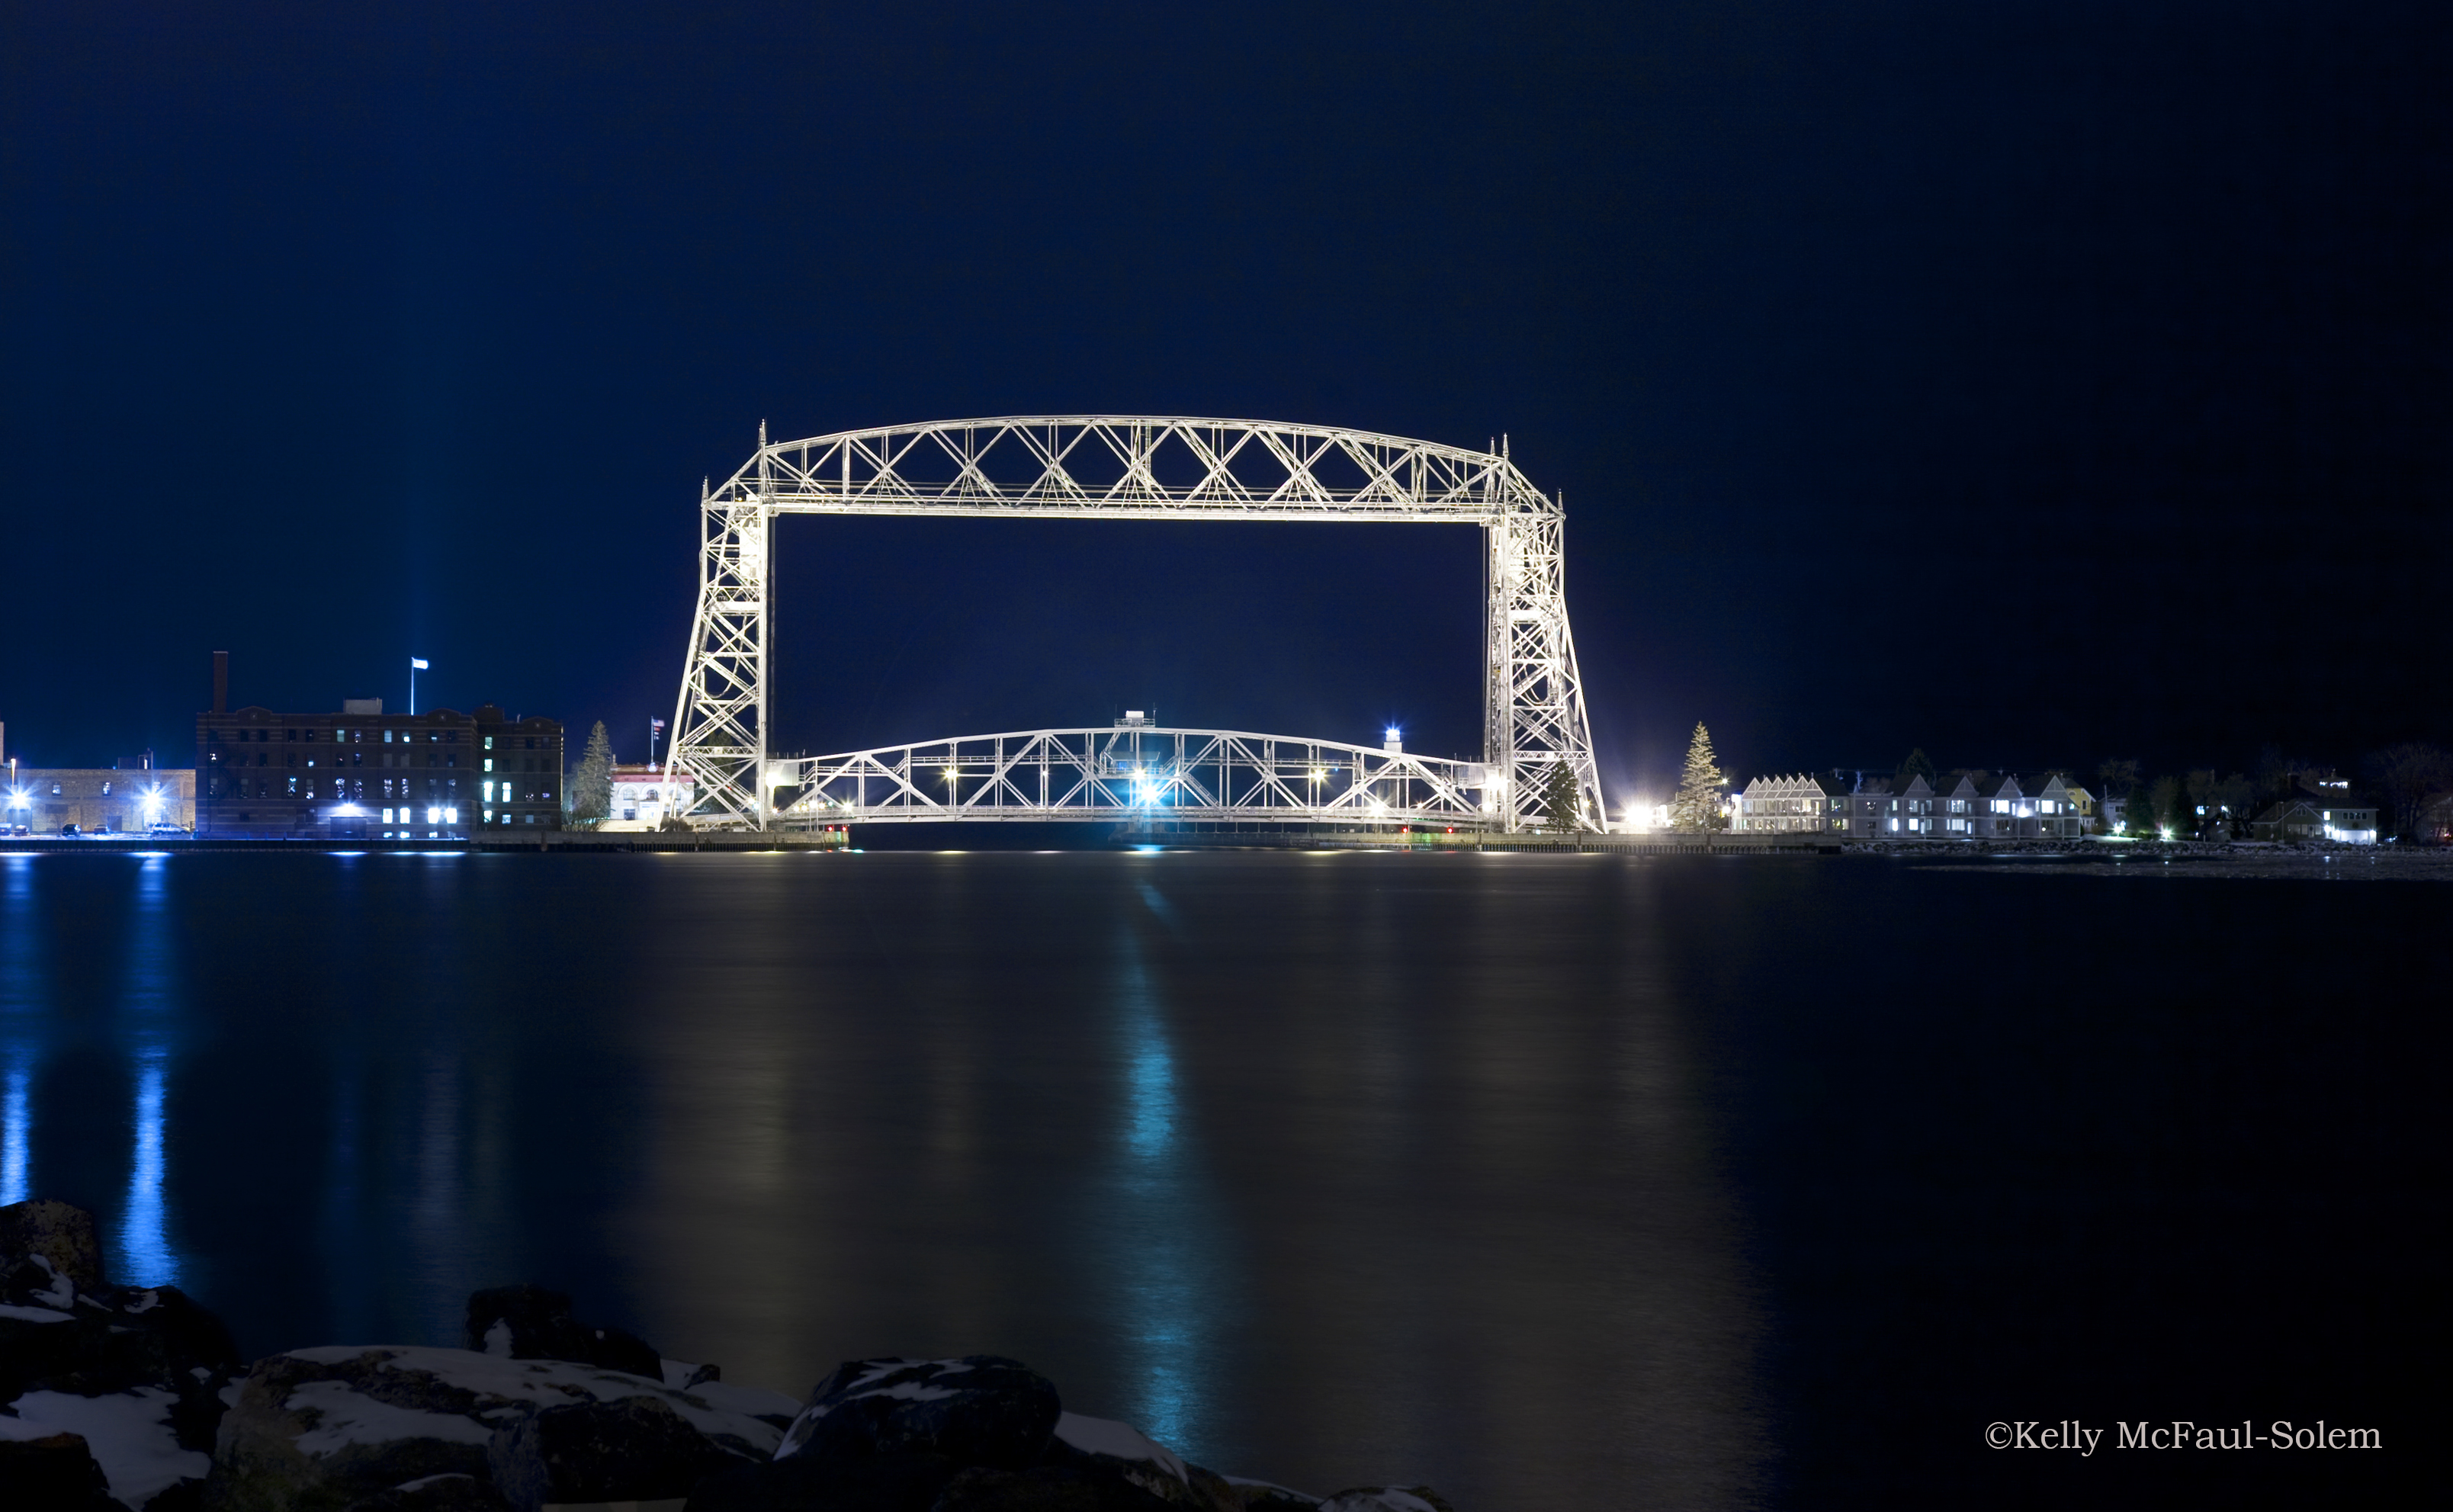 Duluth Ariel Lift Bridge at night.